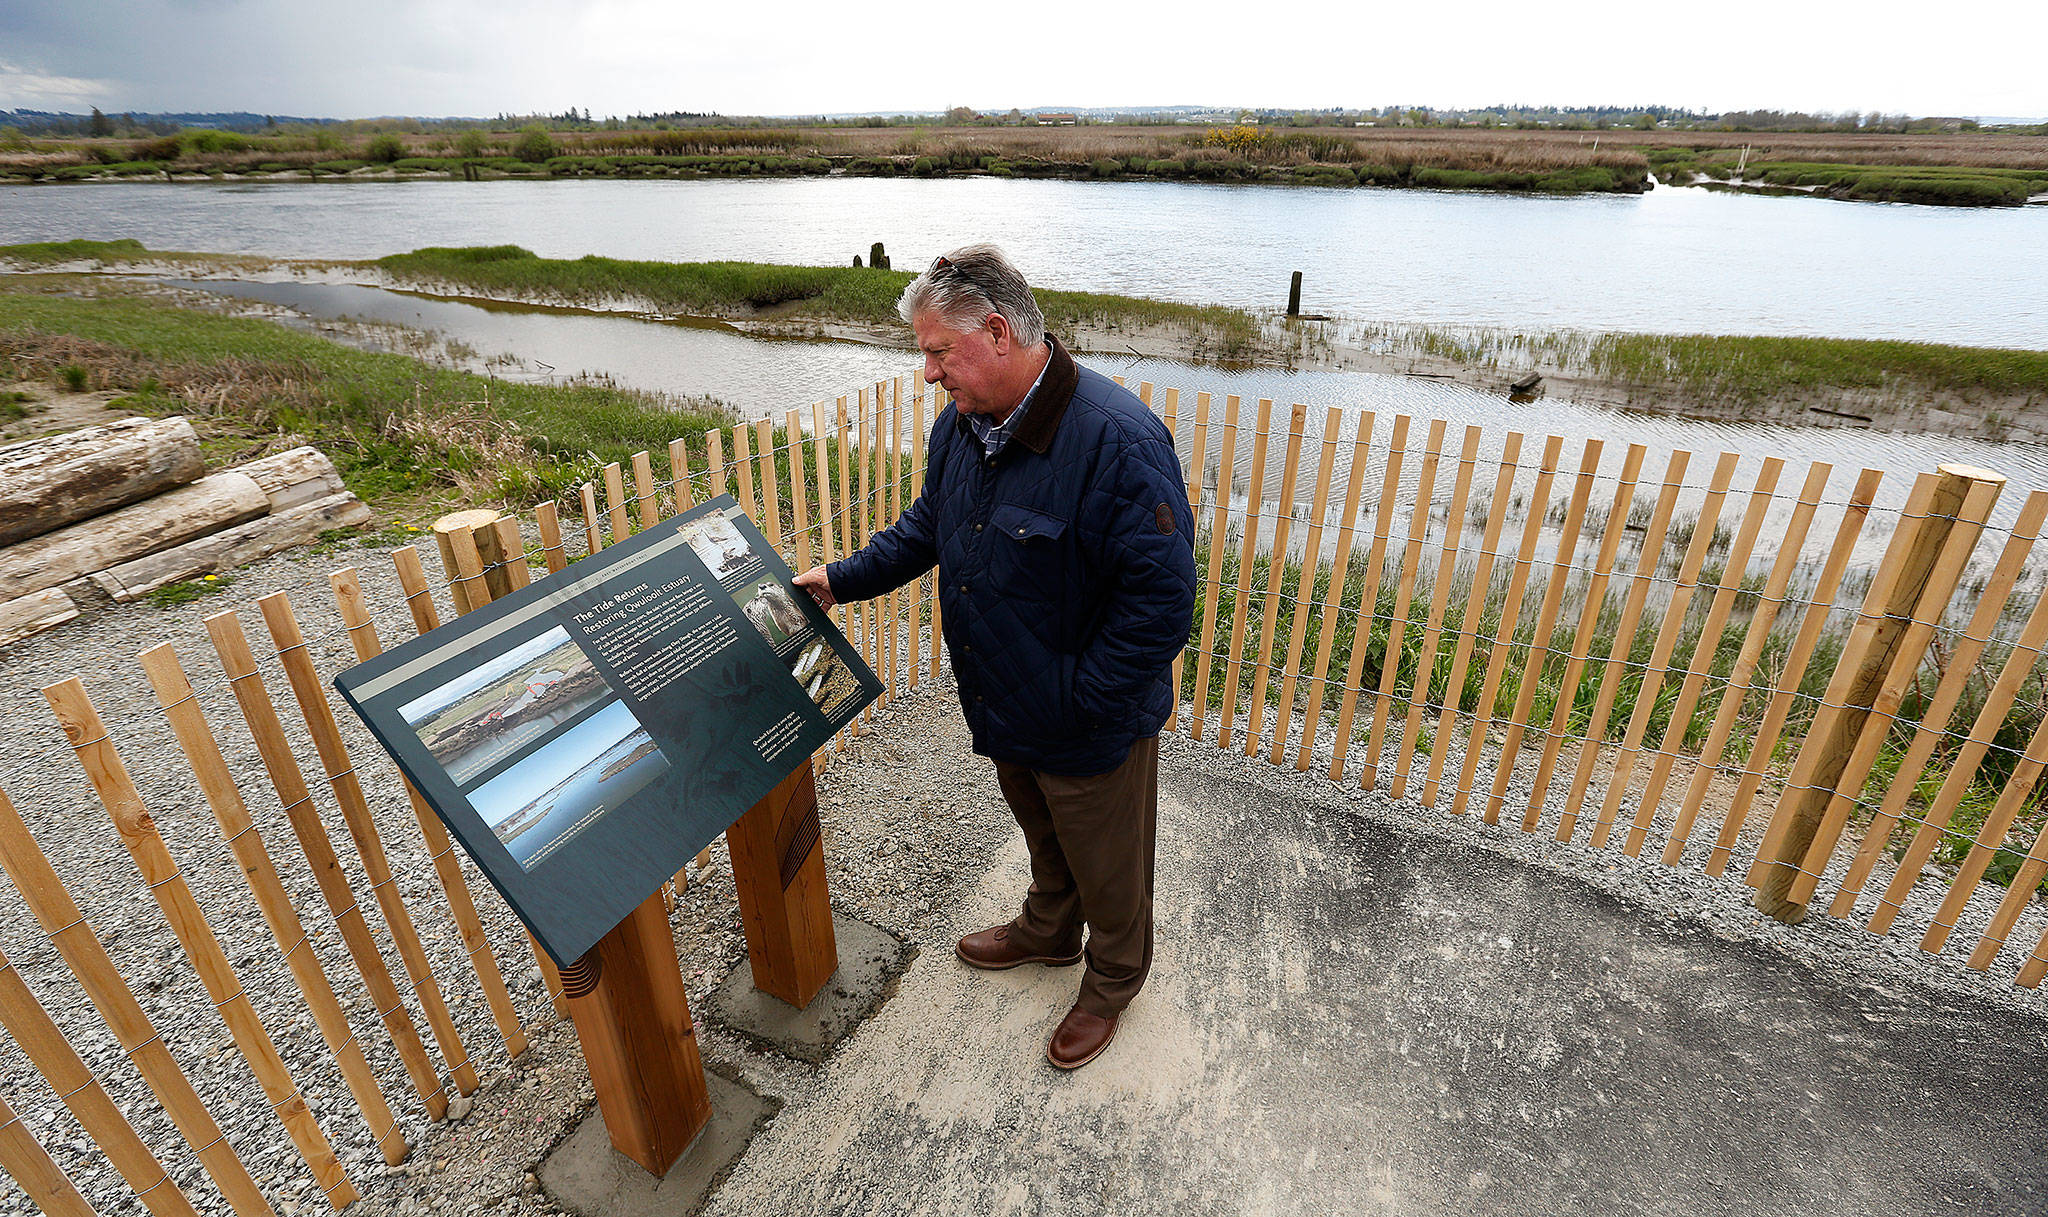 Jim Ballew, Marysville's parks and recreation director, looks at a new sign on the new Qwuloolt Waterfront Trail on Tuesday in Marysville The new trail runs from Ebey Waterfront Park to the Qwuloolt Estuary. (Andy Bronson / The Herald)